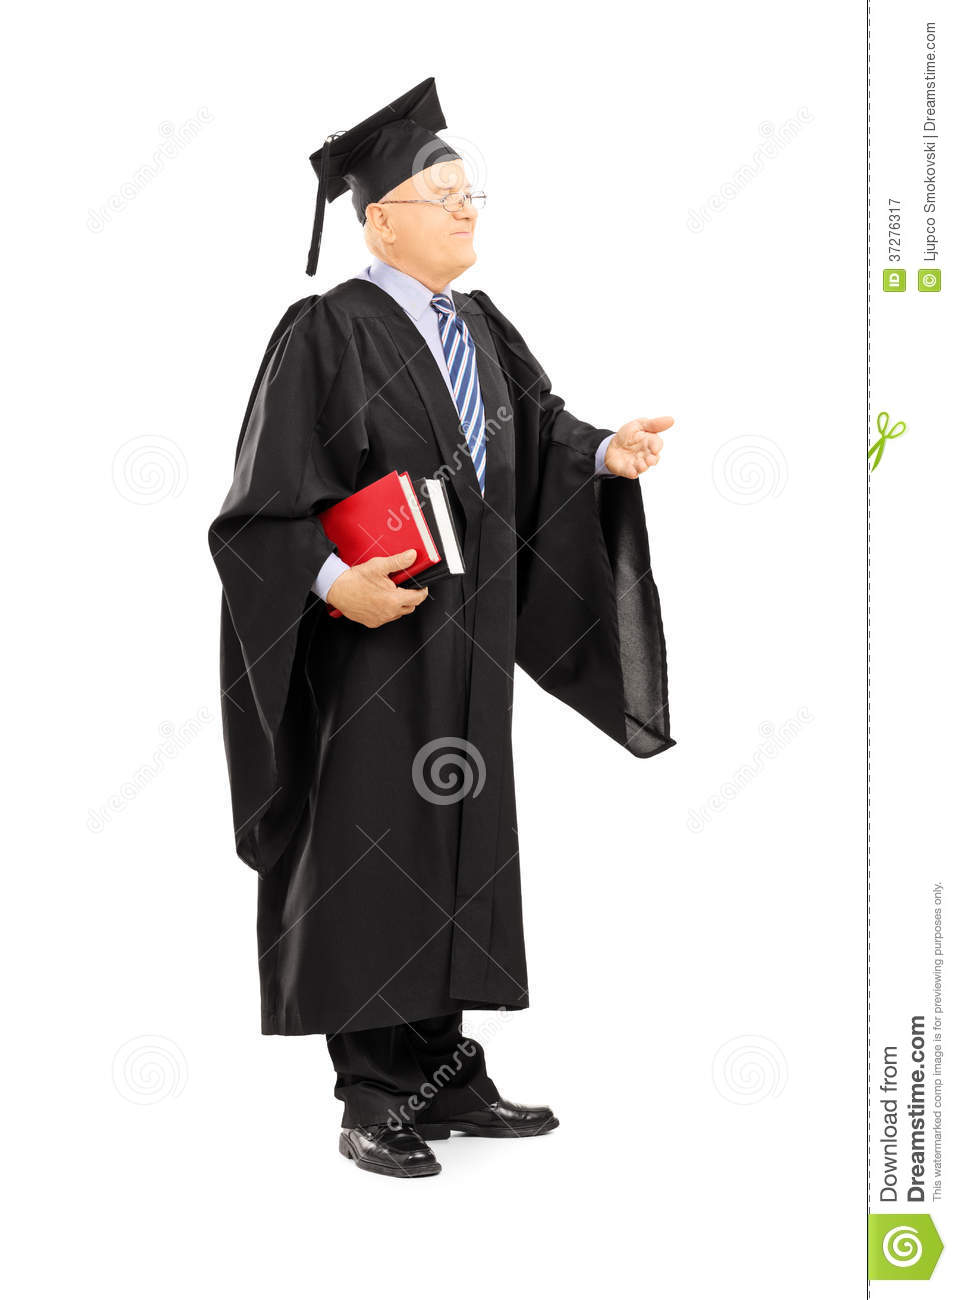 College Professor In Graduation Gown Holding Books Royalty Free ...